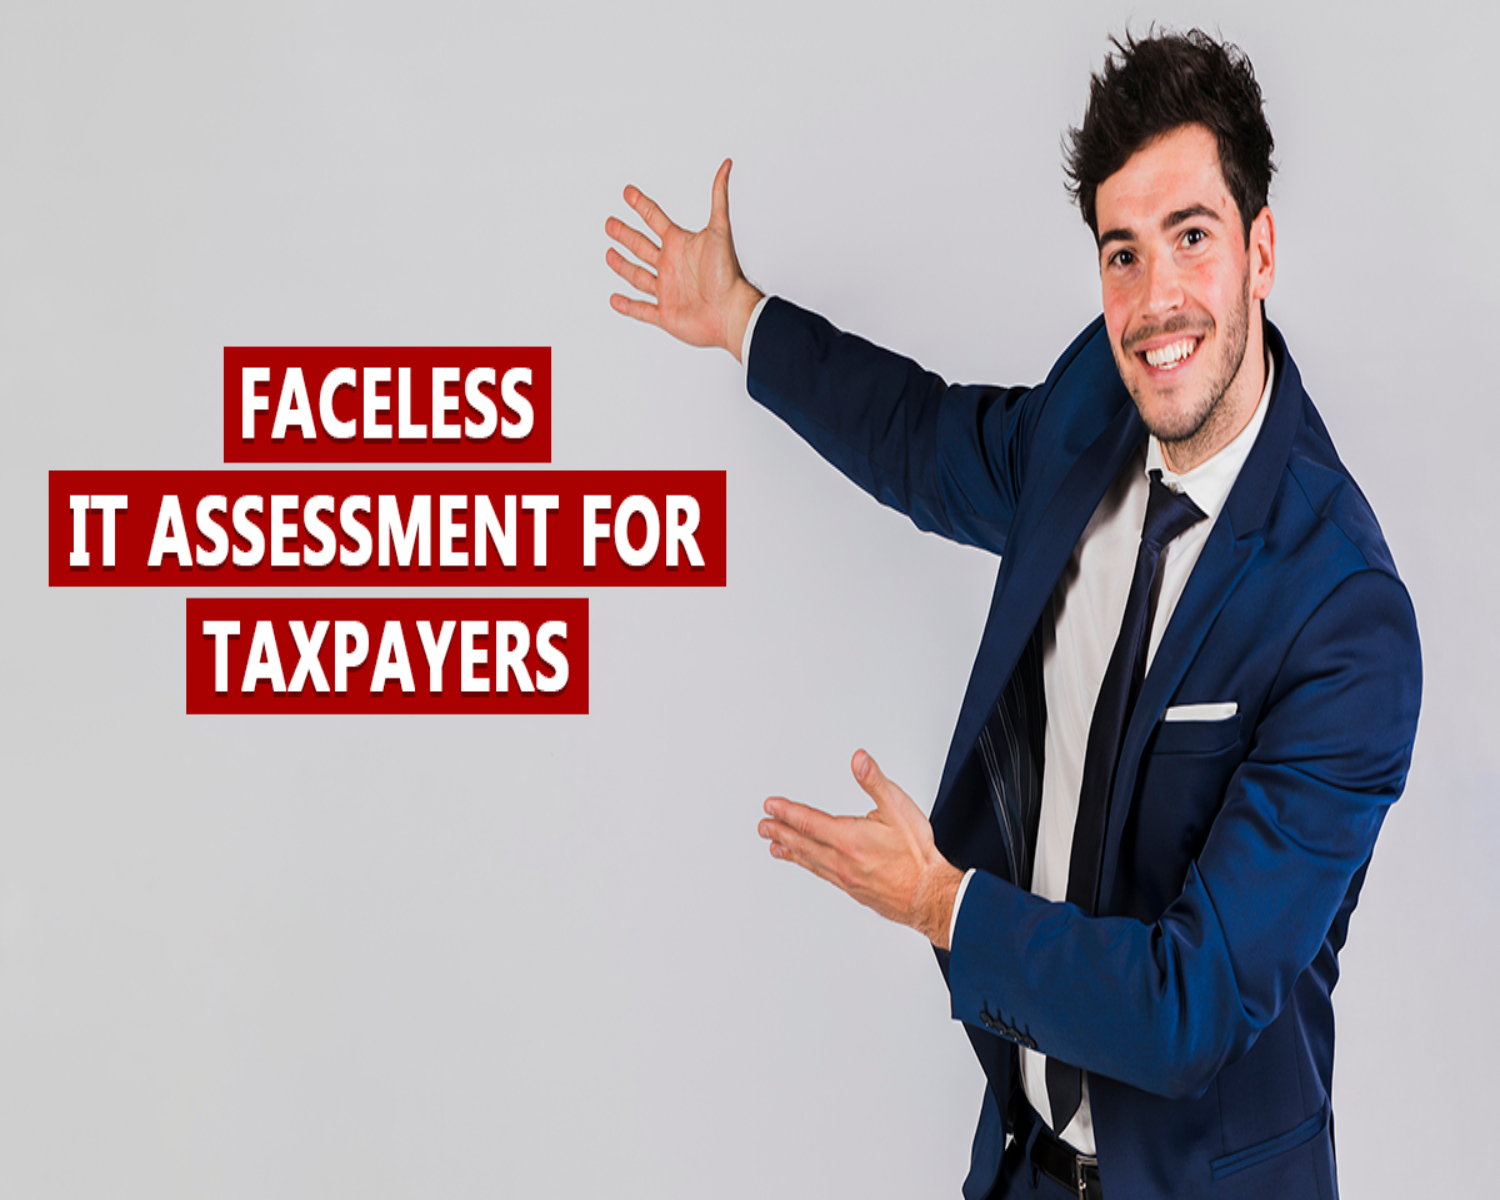 Details of Faceless Assessment and the Problem of Tax Arrears Disclosed